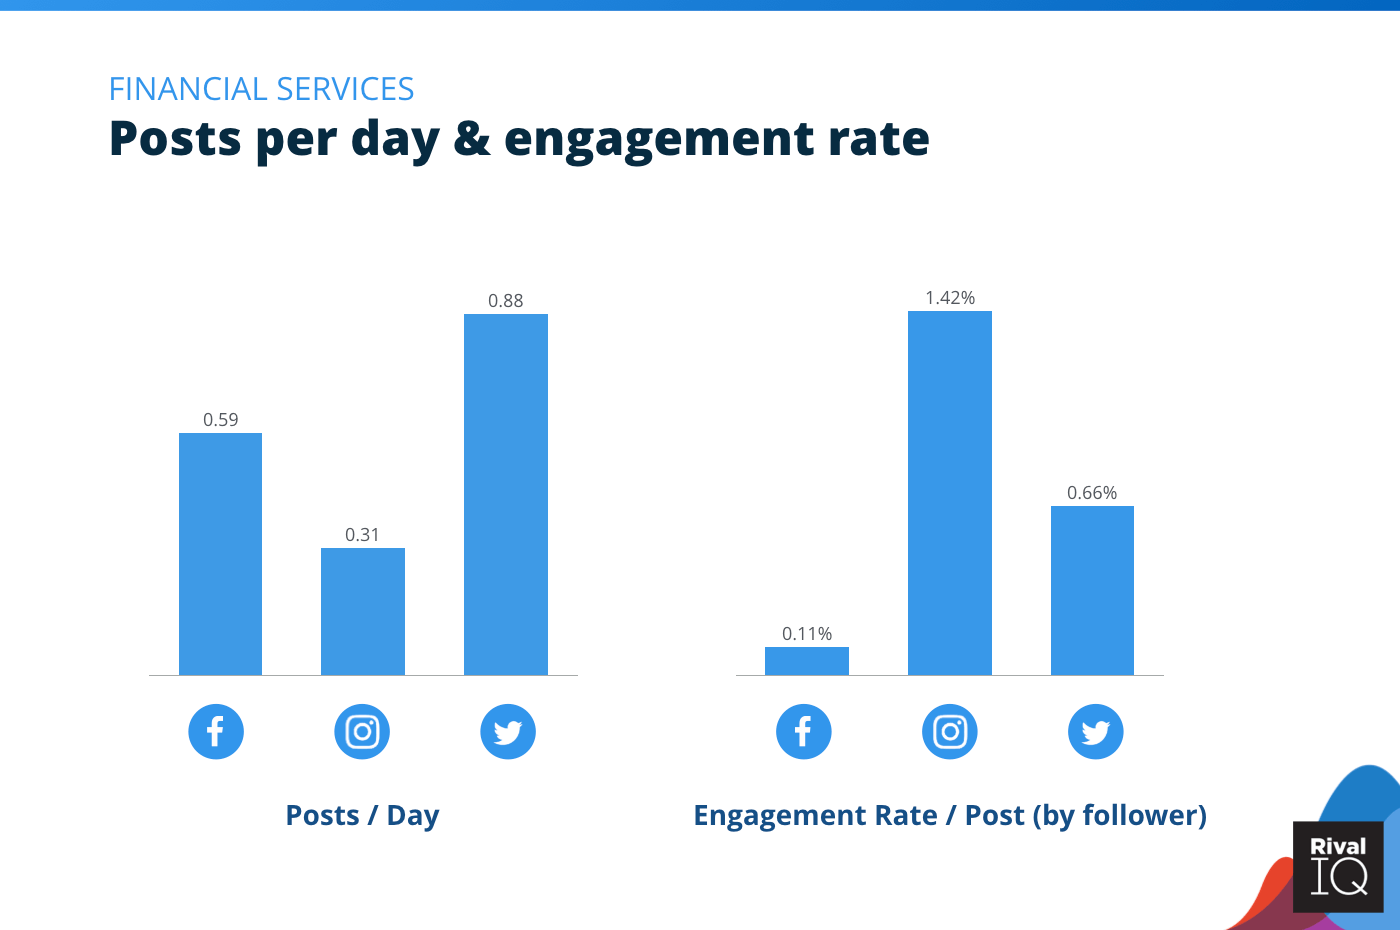 Chart of Posts per day and engagement rate per post across all channels, Financial Services